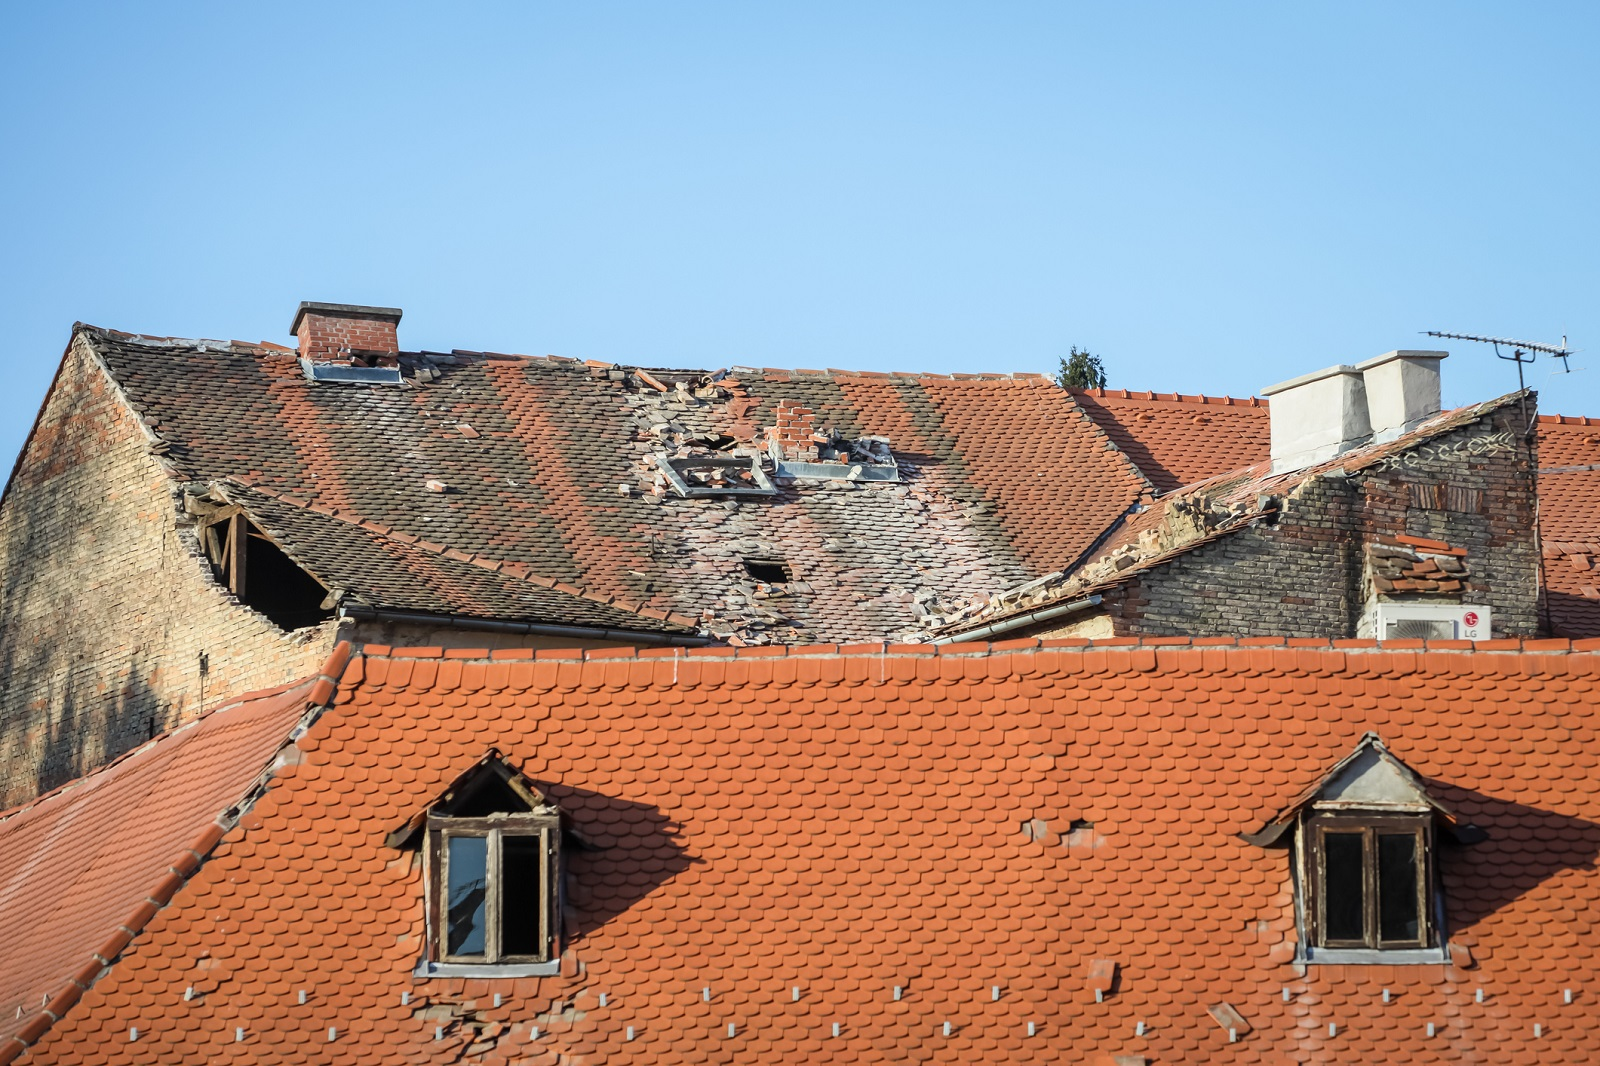 Zagreb, Croatia - March 22, 2020 :Capital of Croatia, Zagreb has been hit by the magnitude of the earthquake 5.5 per Richter. Damaged roofs from earthquake in downtown of Zagreb.